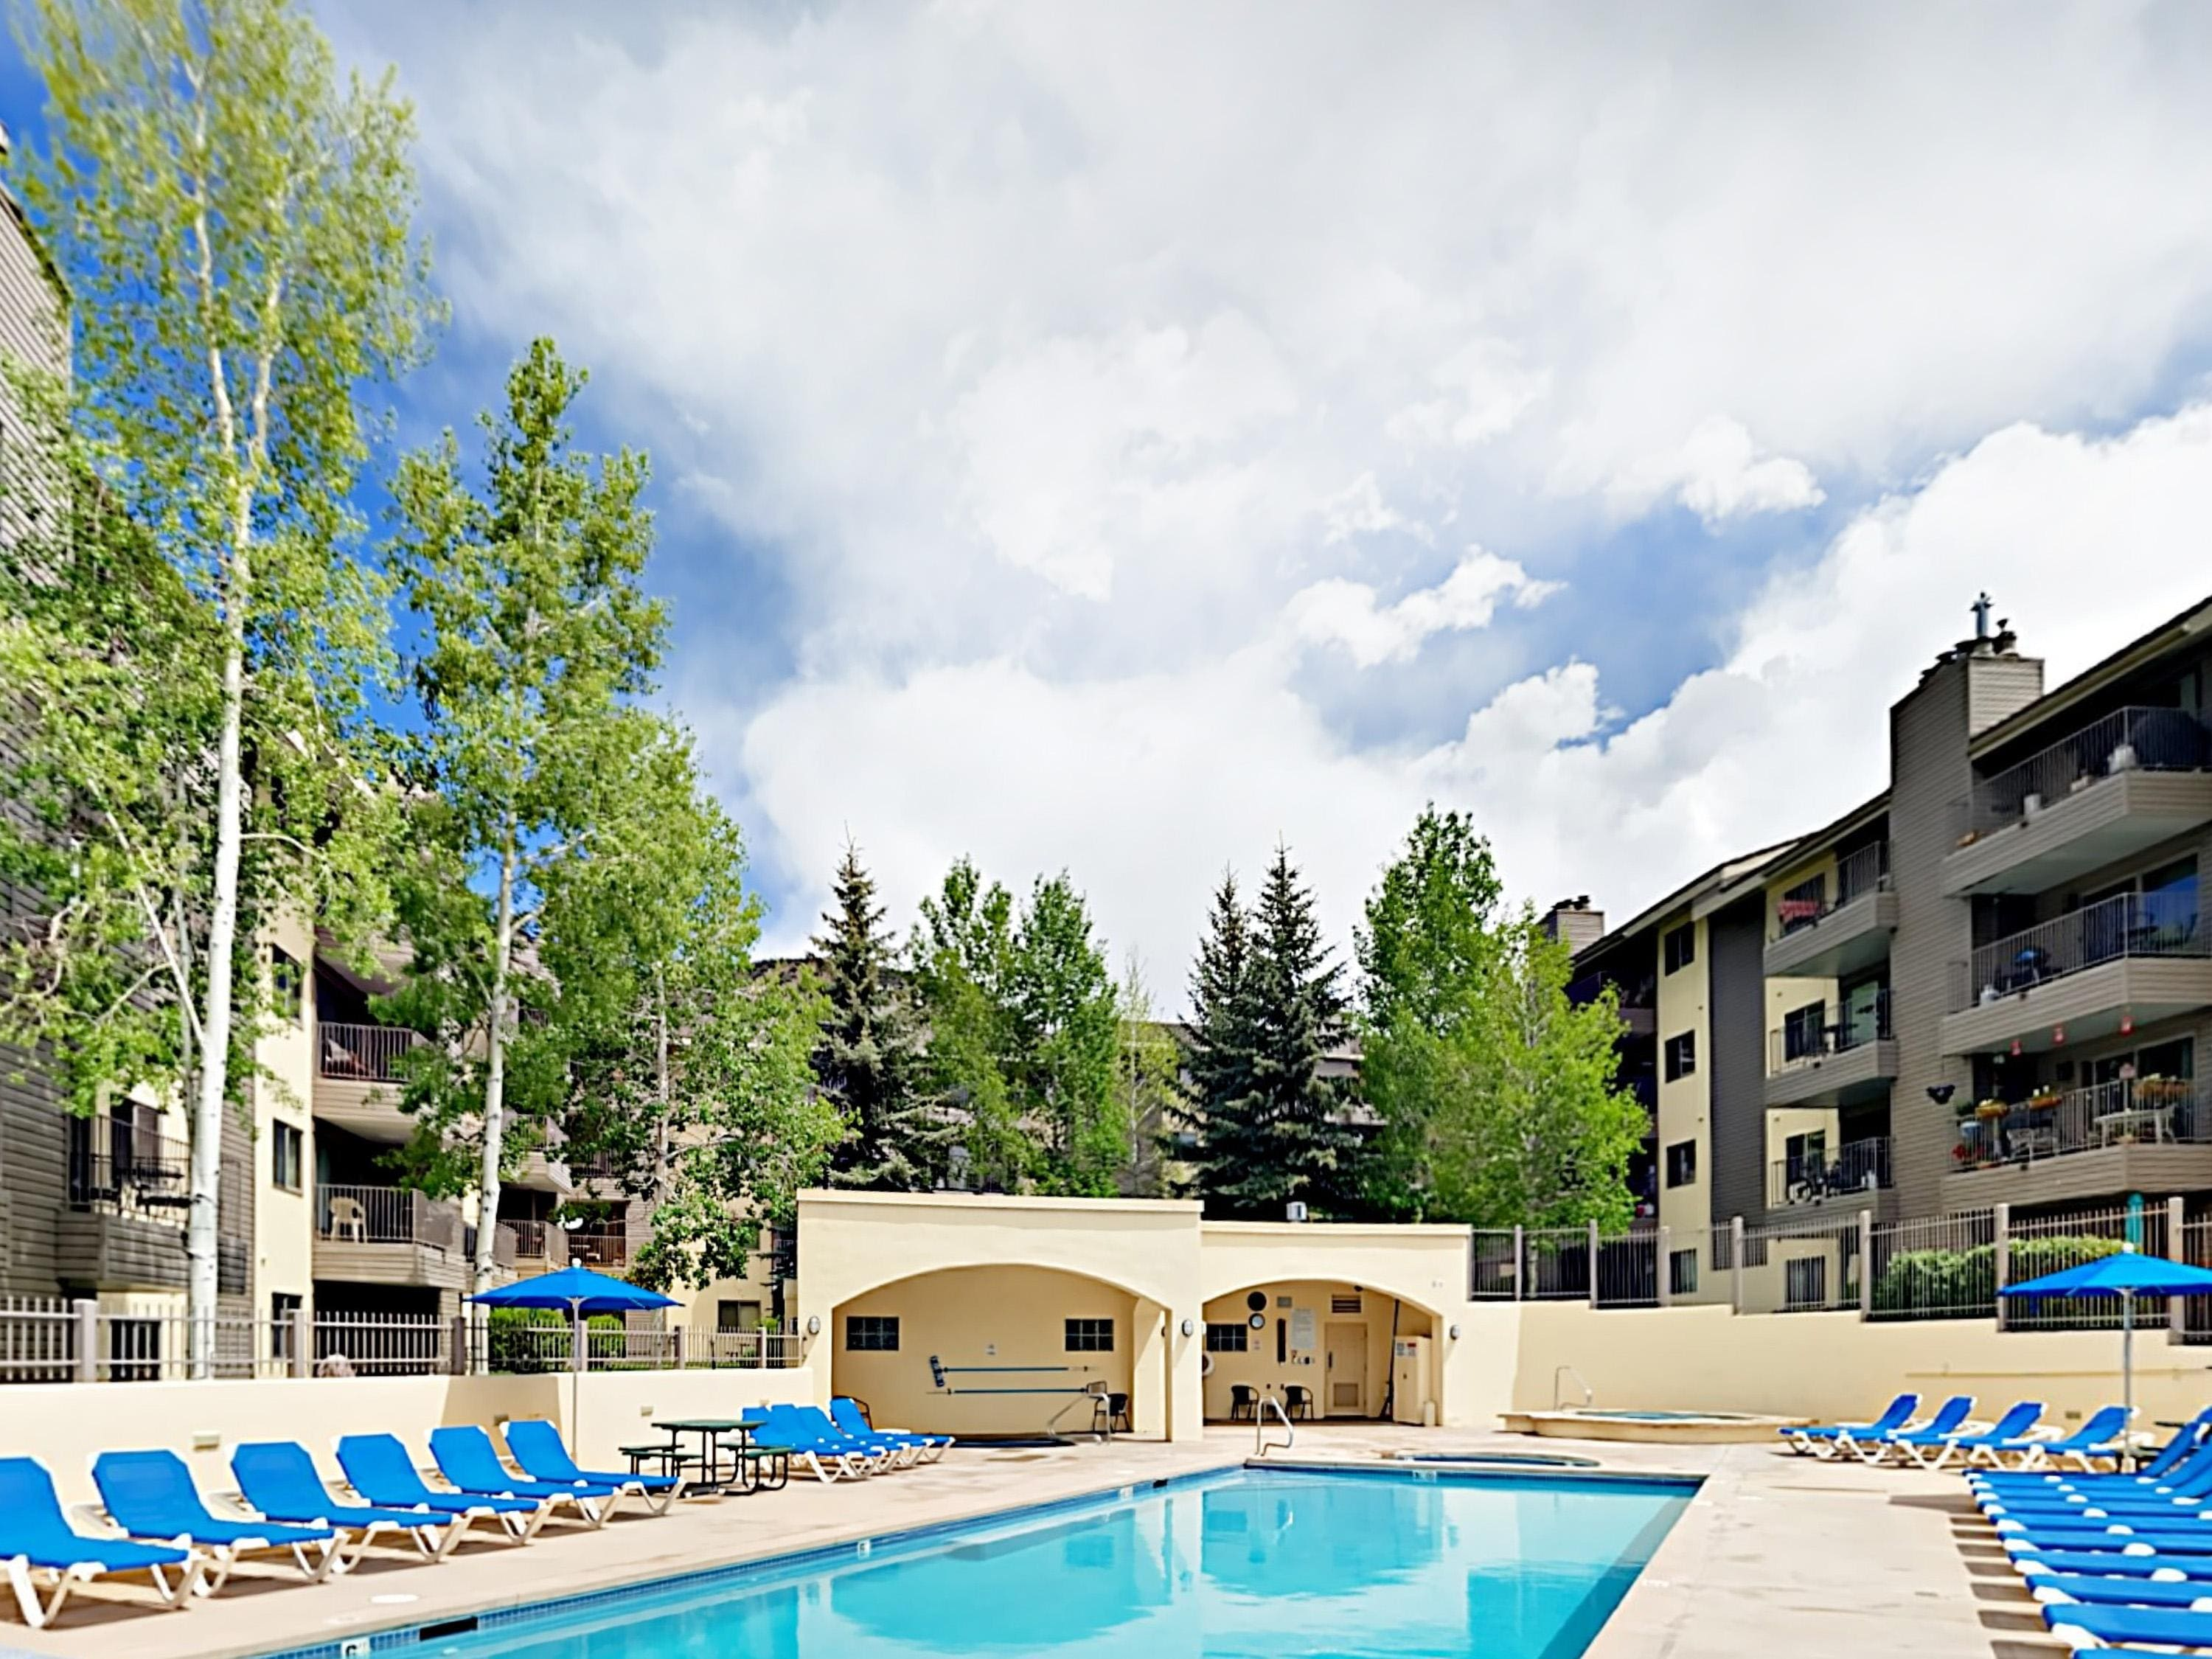 In summer months, soak up the sun by the community pool.